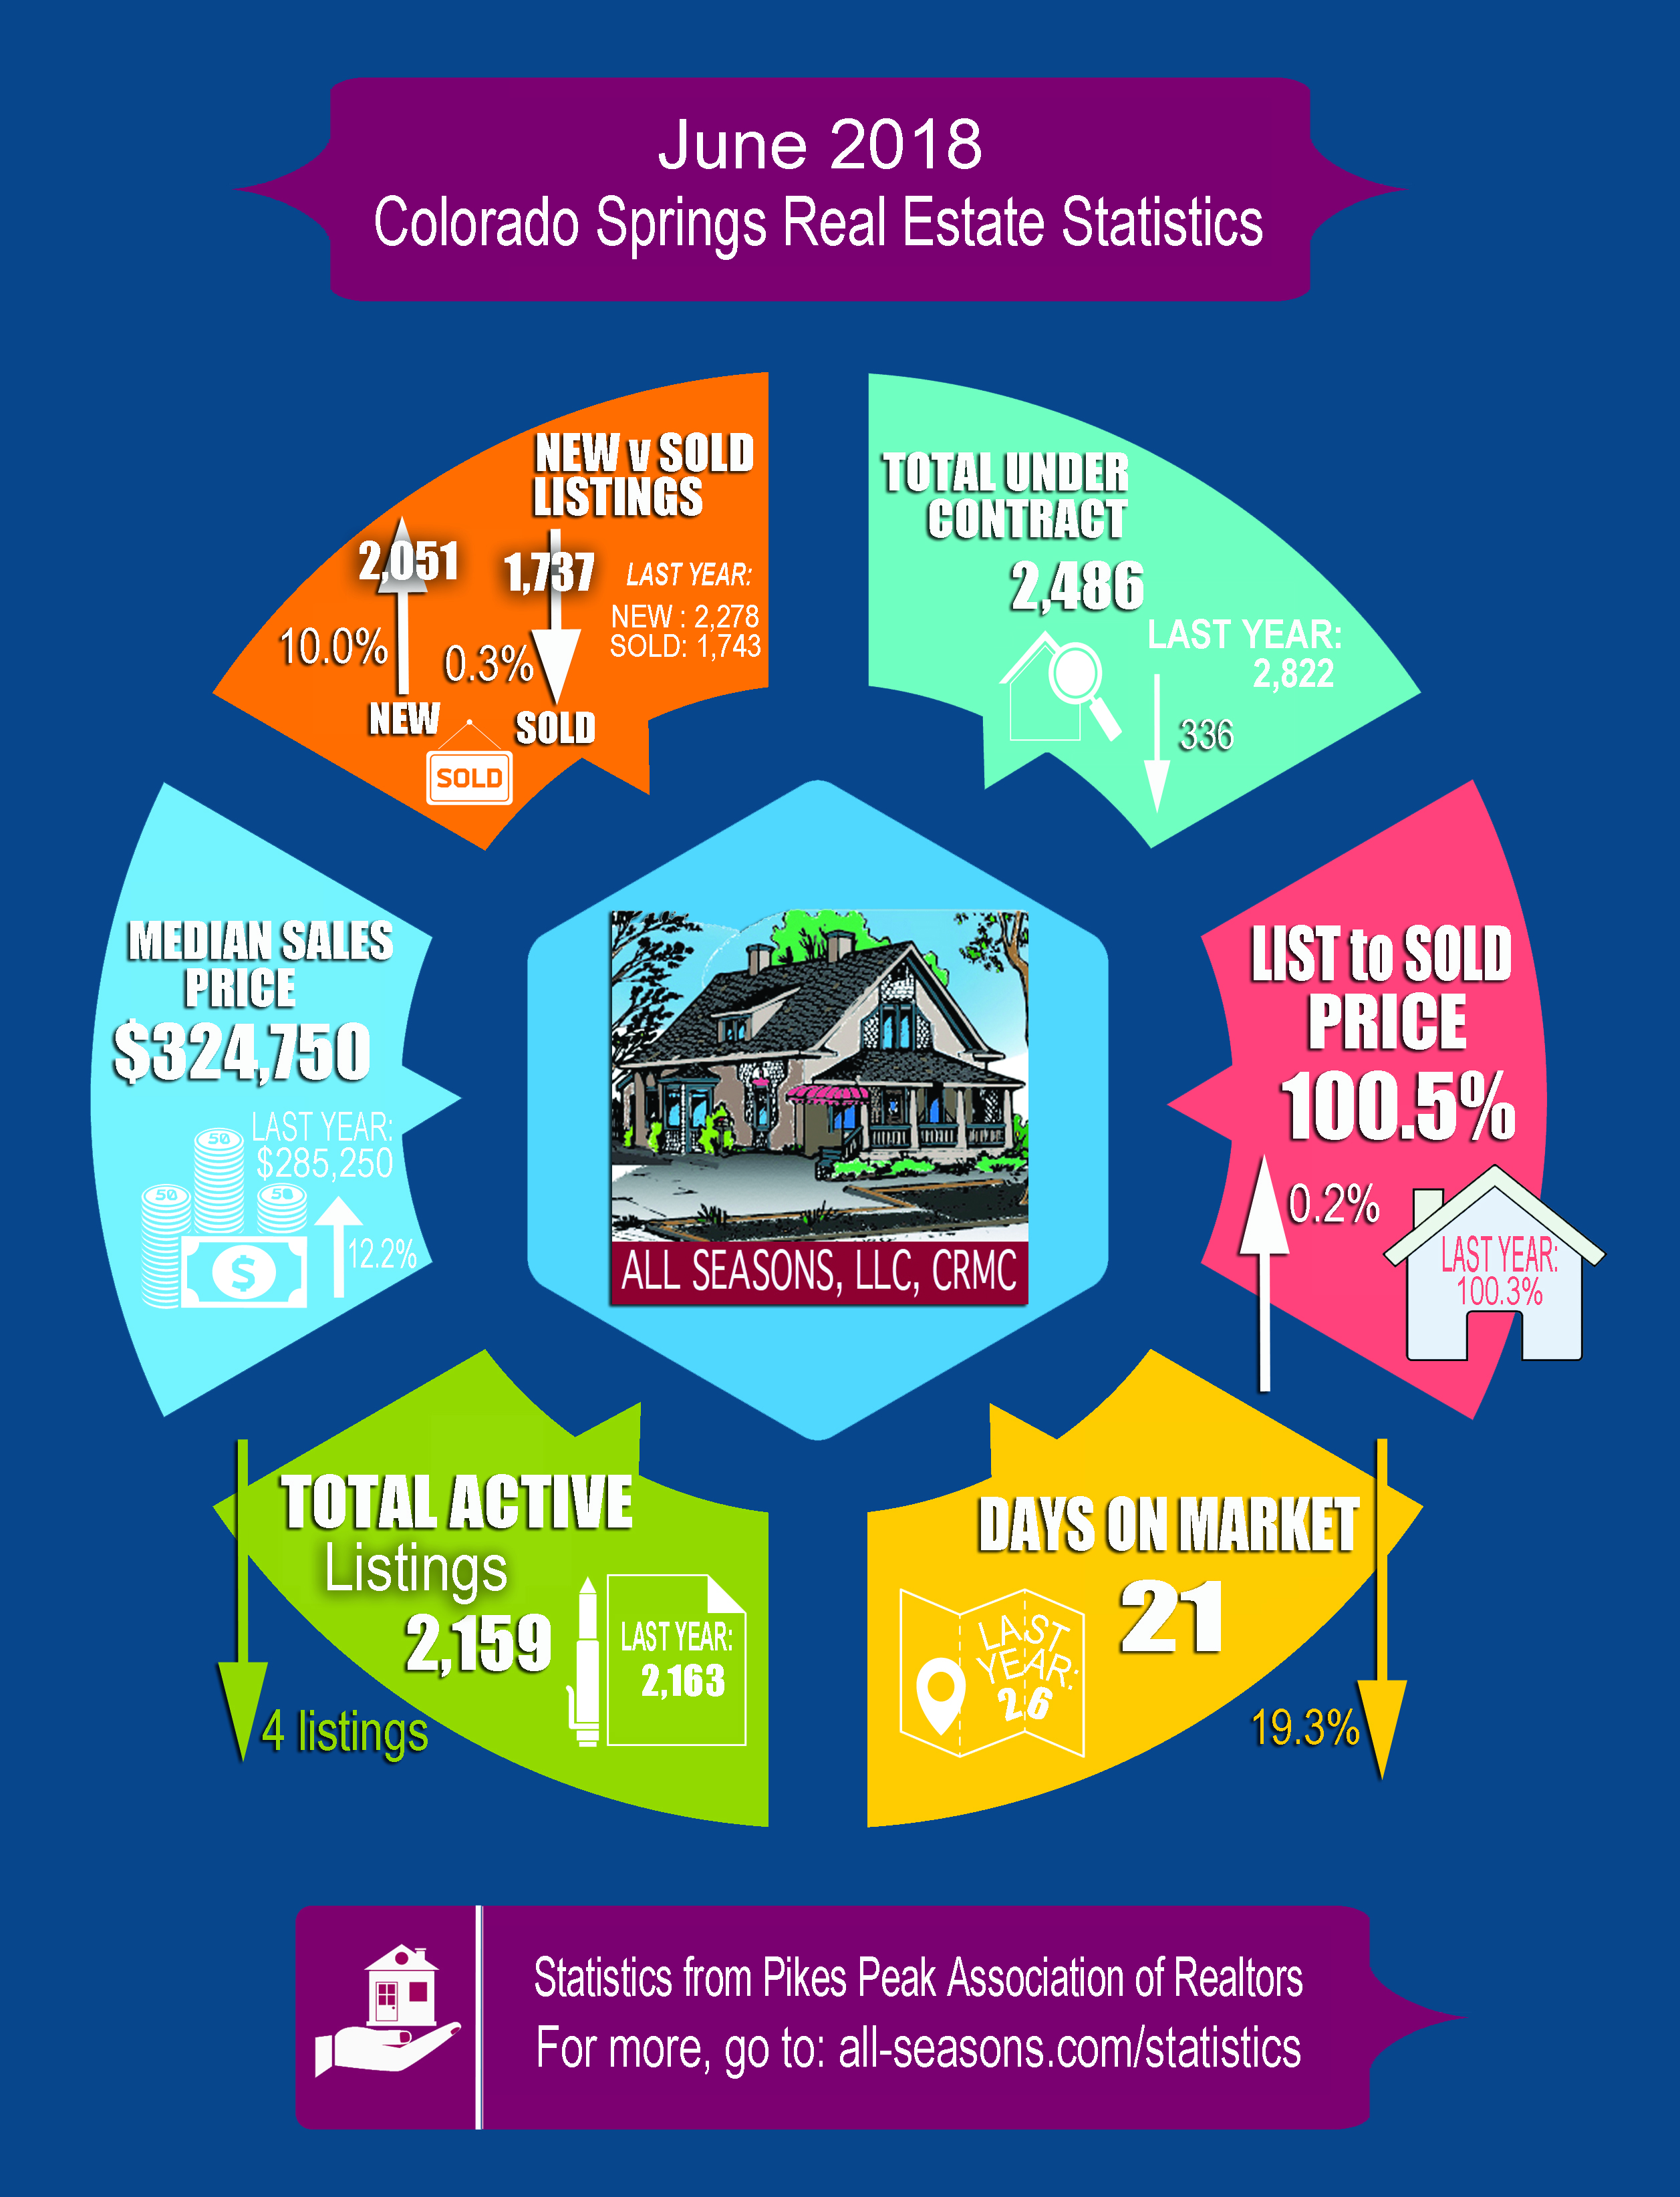 APM-real-estate-infographic-June-2018-1.